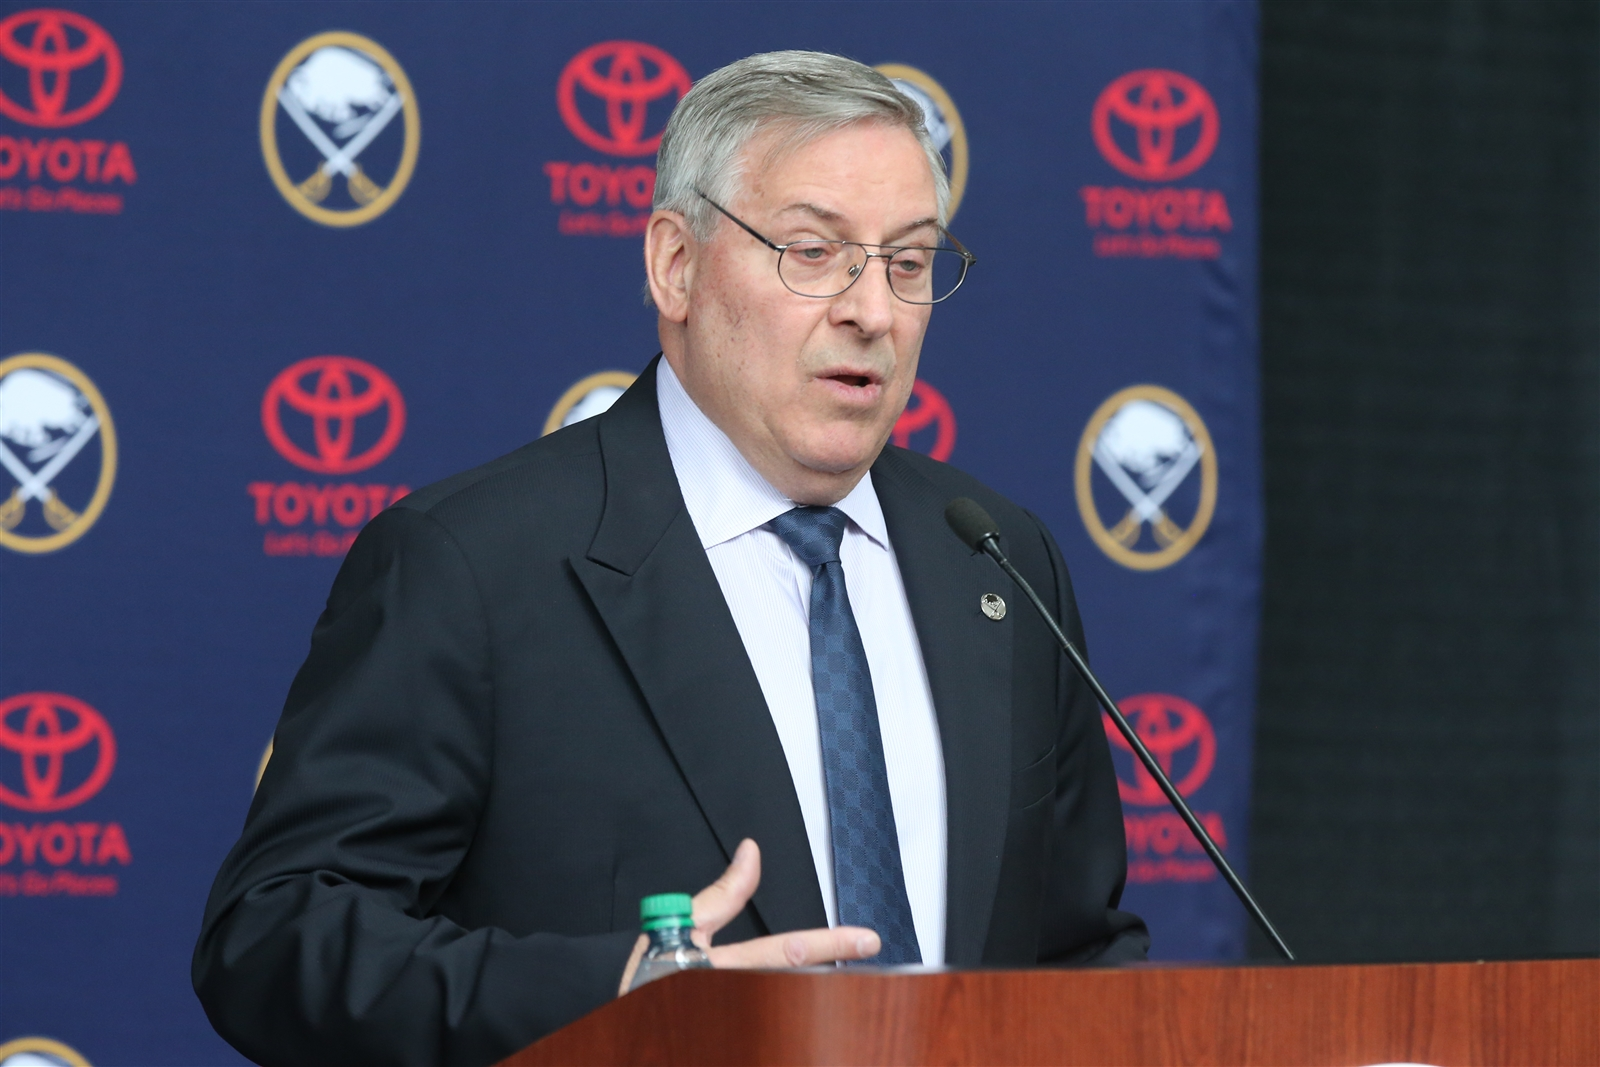 Sabres owner Terry Pegula holds a press conference at KeyBank Center to explain his firing of GM Tim Murray, coach Dan Bylsma and other staff.